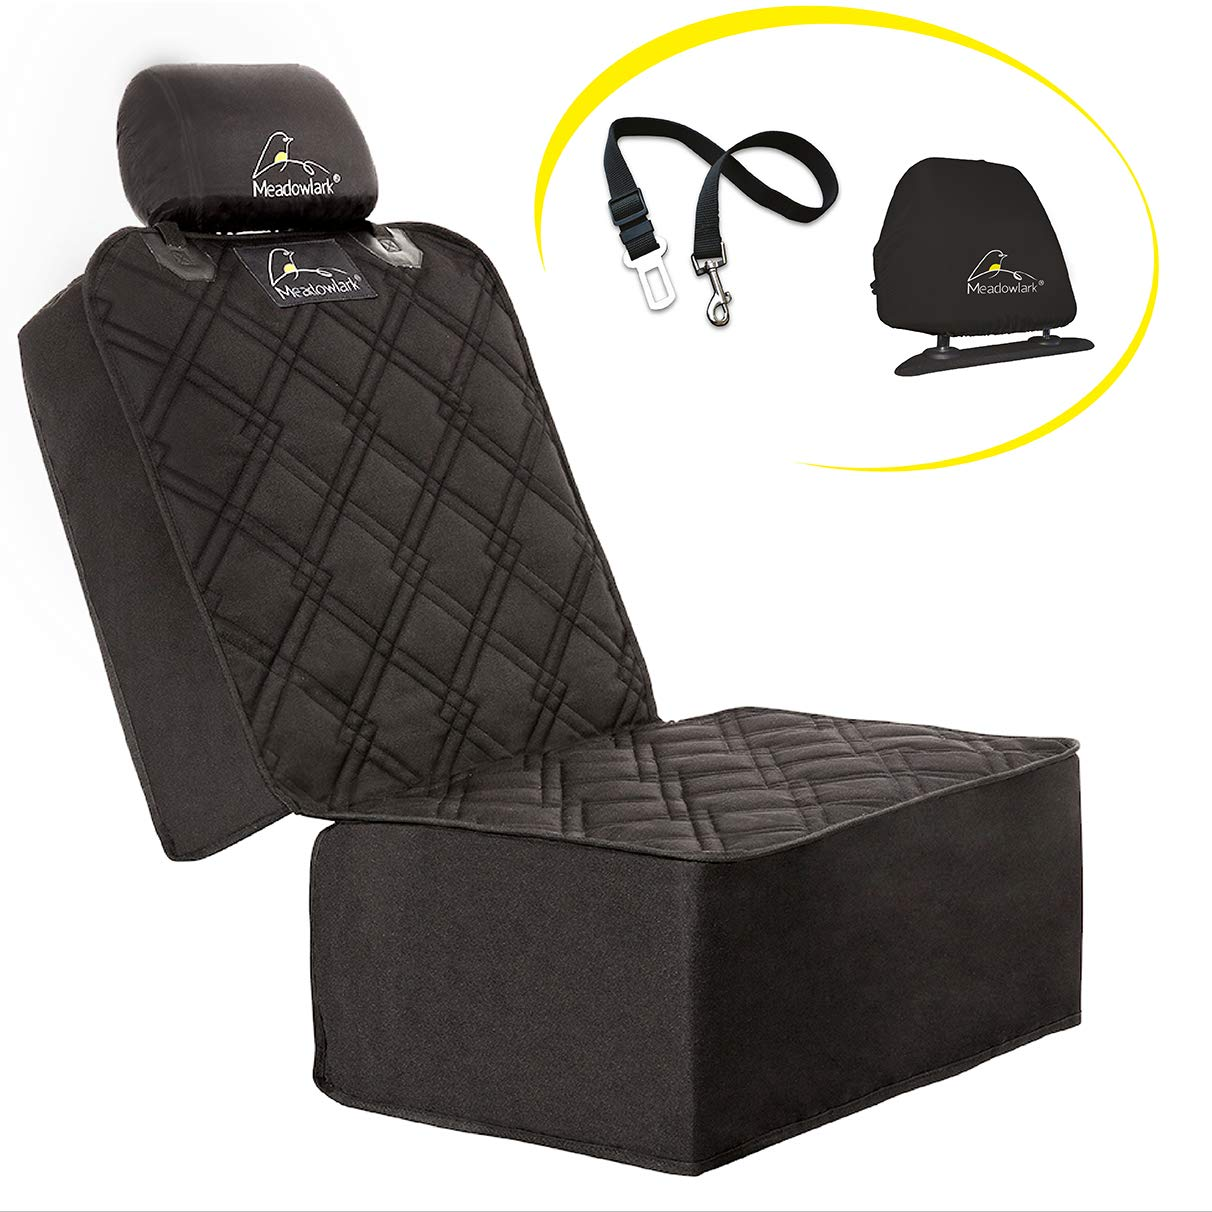 Meadowlark Car Seat Cover for Dogs. Premium Extra Thick Quilted Full Predection Front Seat Predector,Side Flaps, Waterproof, Durable, Nonslip Design, Free Bonus- Pet Seat Belt & Headrest Predector